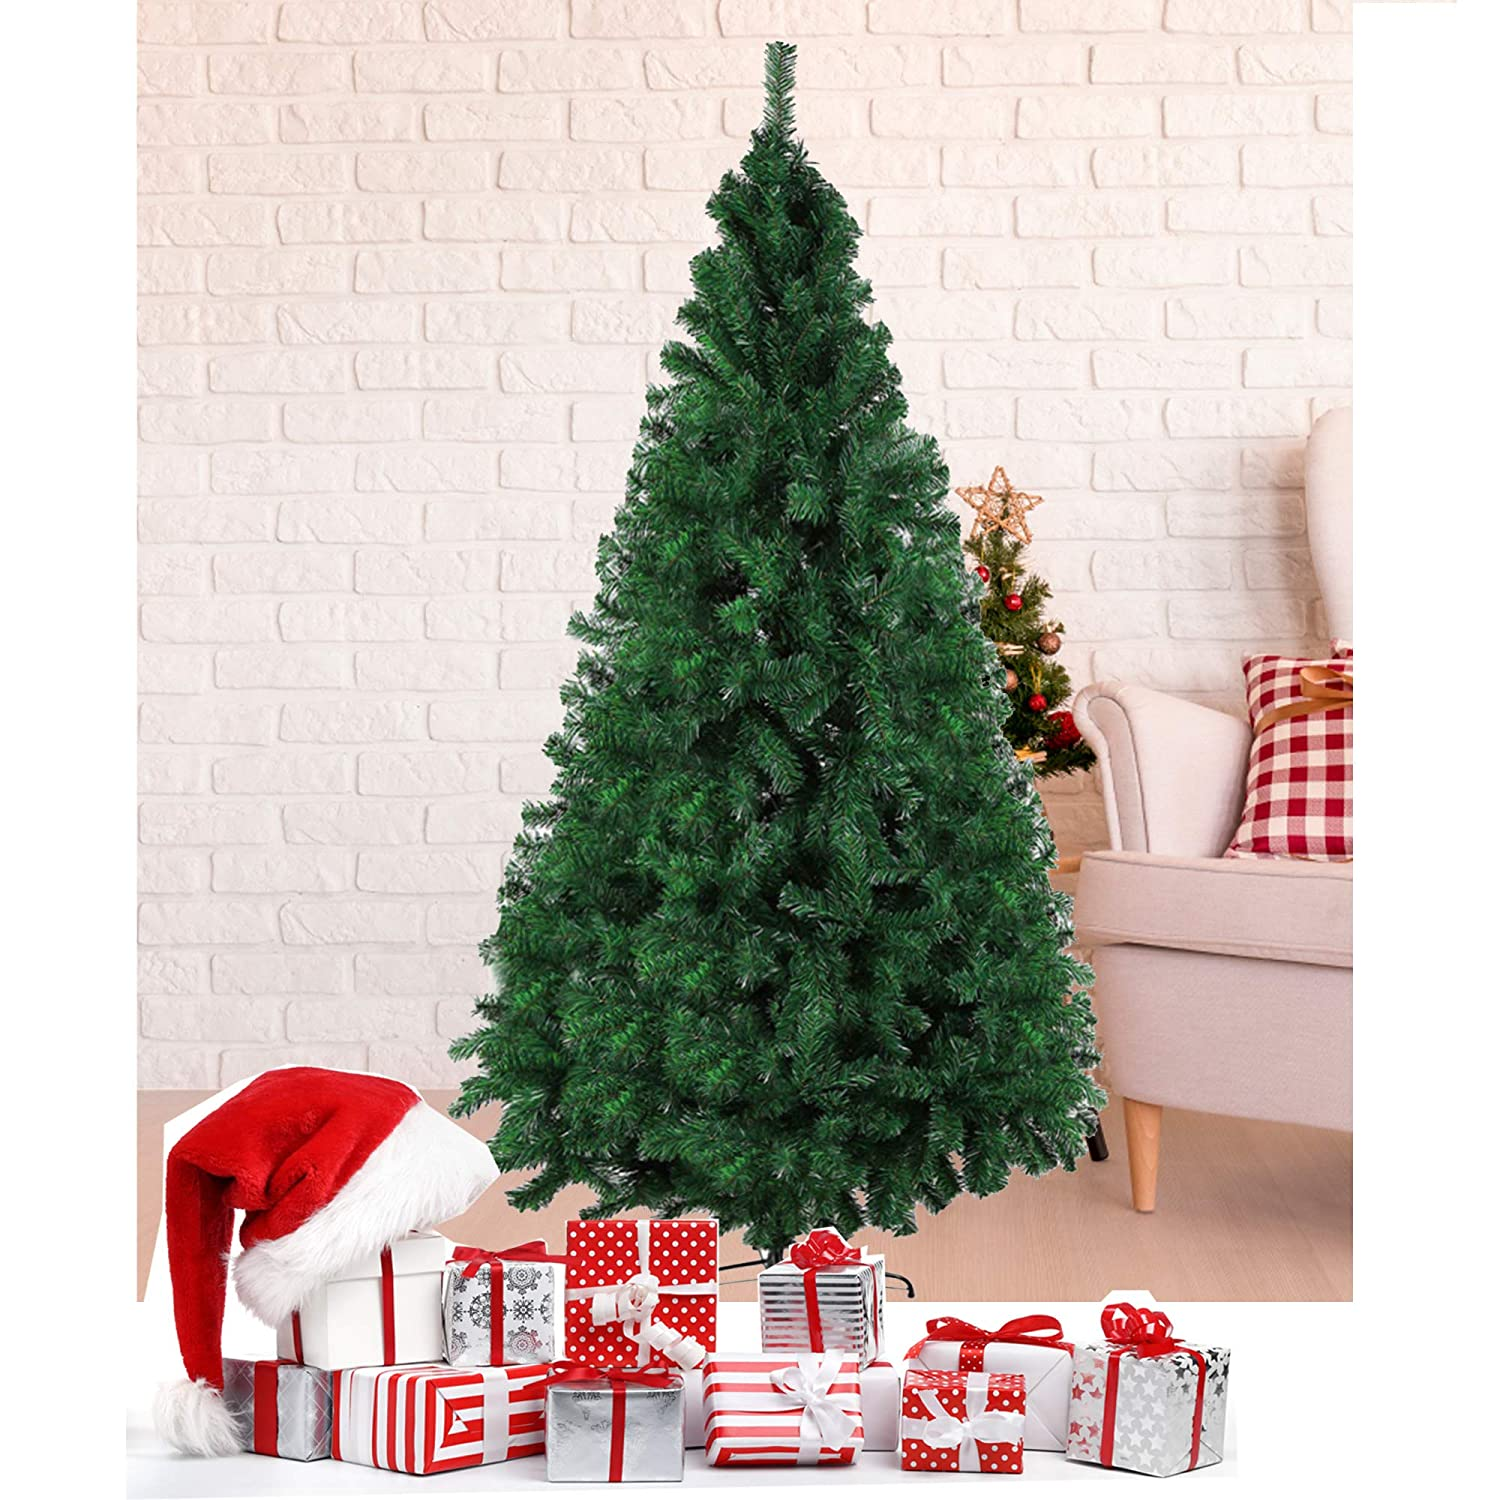 Amazon Com Luckyermore 7 Ft Christmas Pine Tree Artificial Fake Xmas Tree With Solid Metal Stand Decoration For Festival Party Holiday Decorationsgreen